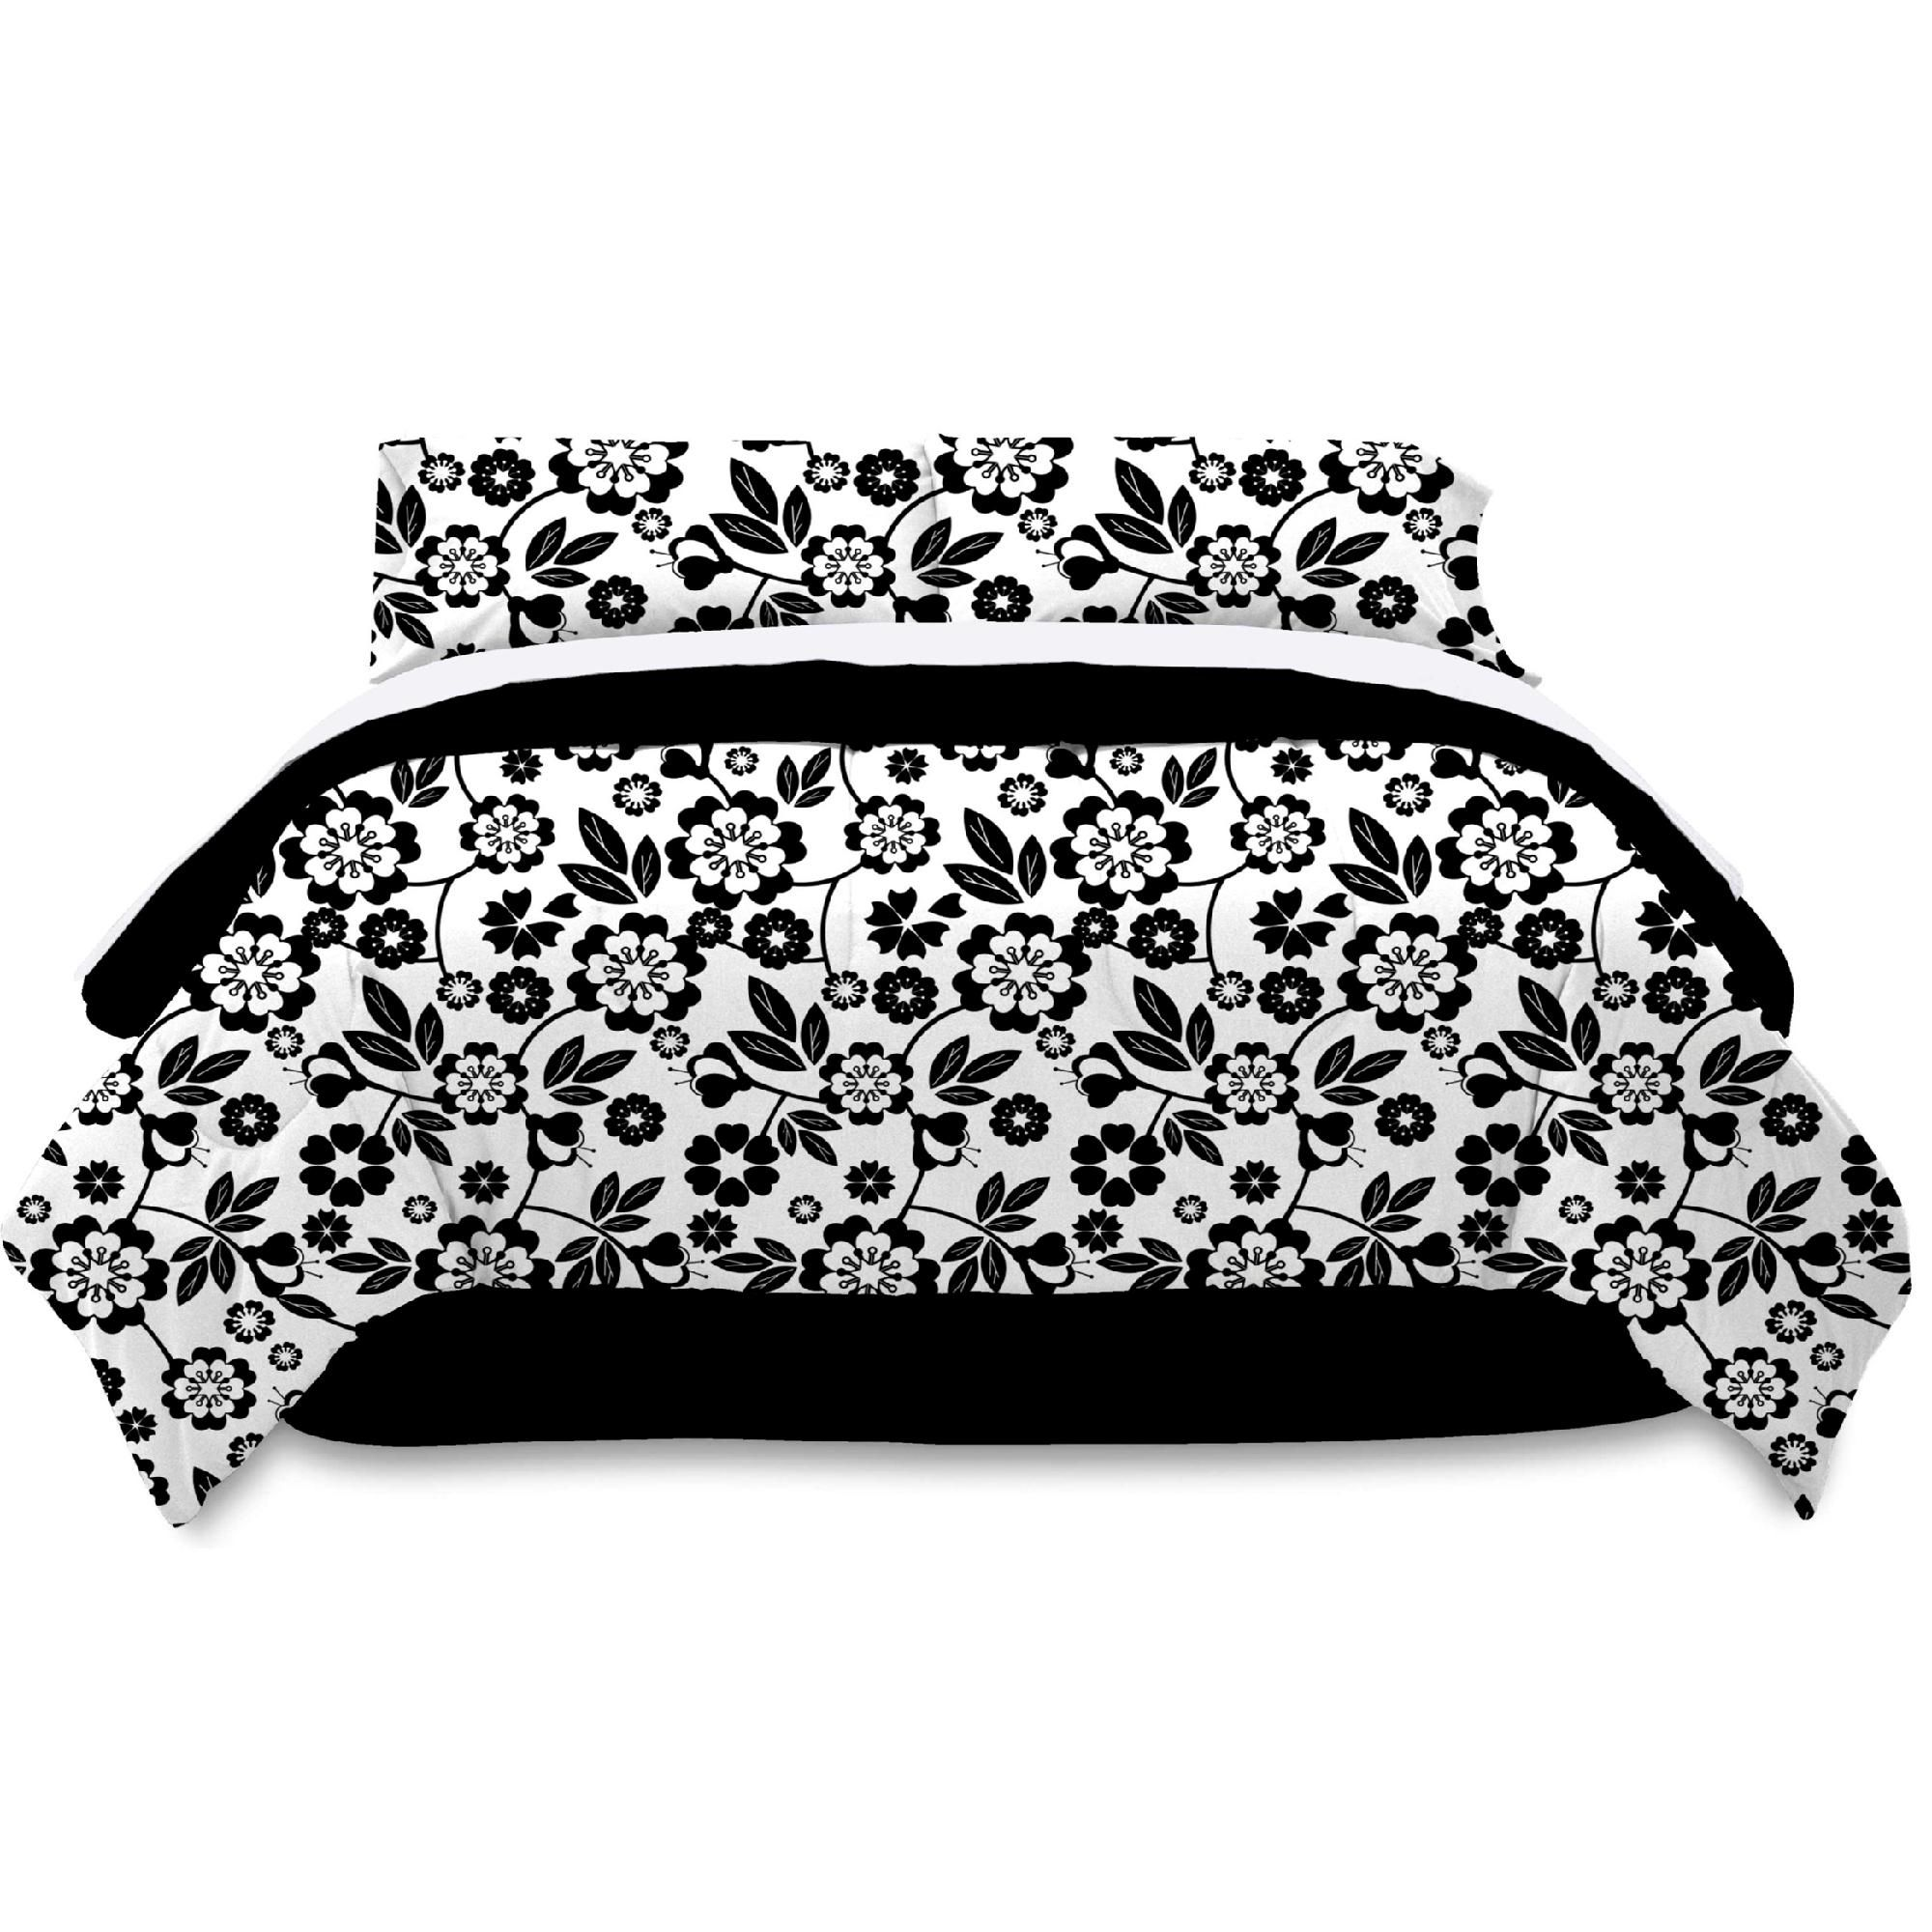 Metro Luxe Black and White Floral King Bed Ensemble